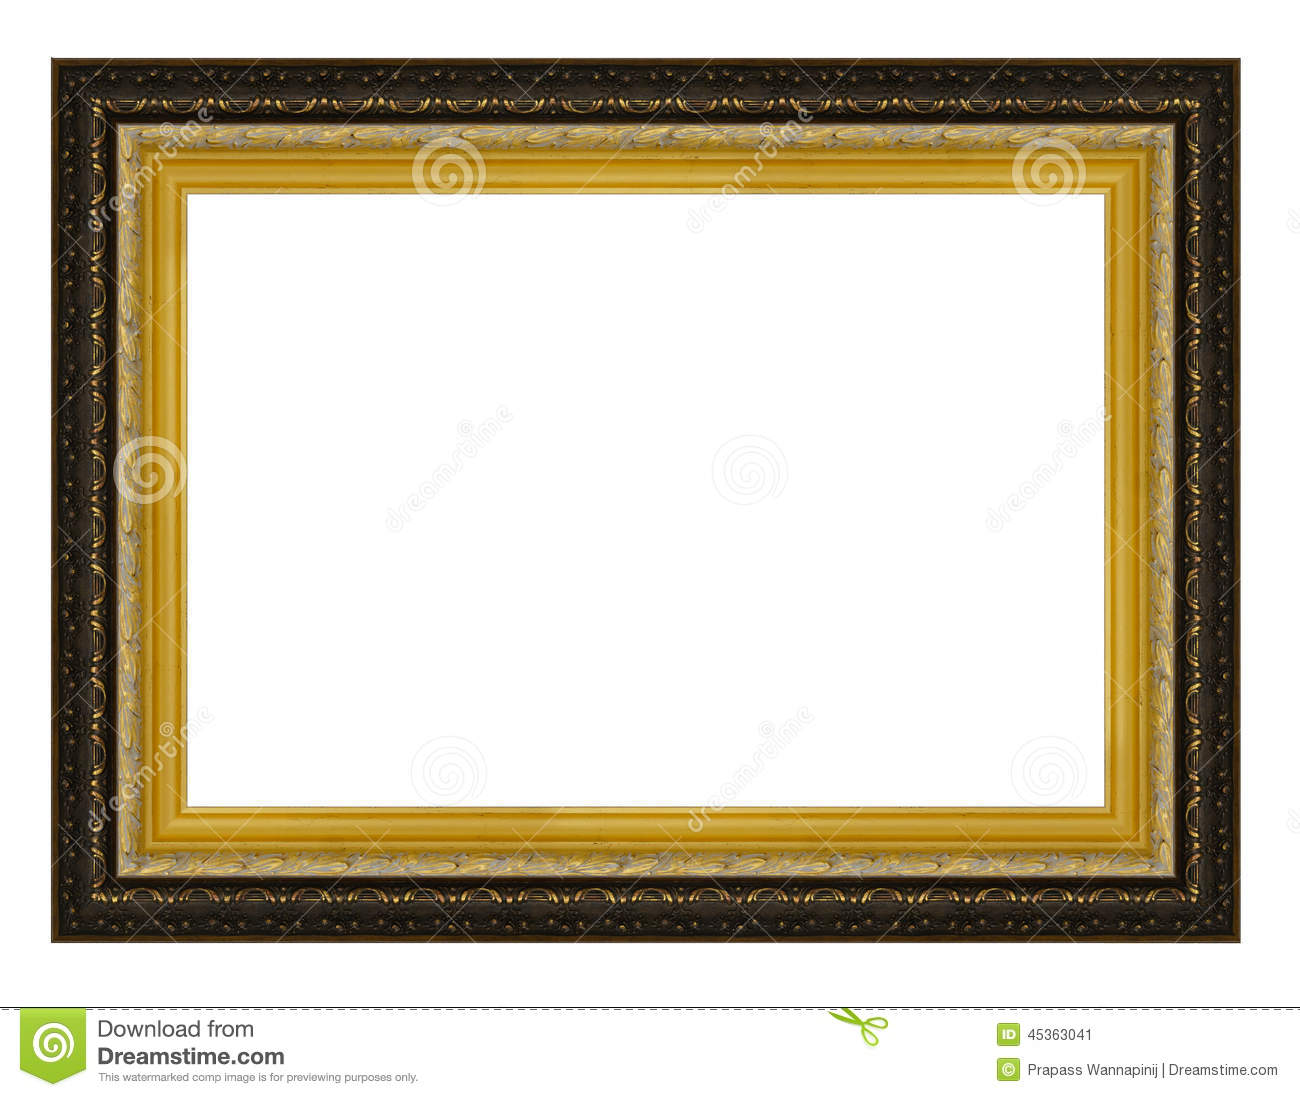 Vintage gold and black wooden picture frame stock image image of vintage gold and black wooden picture frame jeuxipadfo Image collections